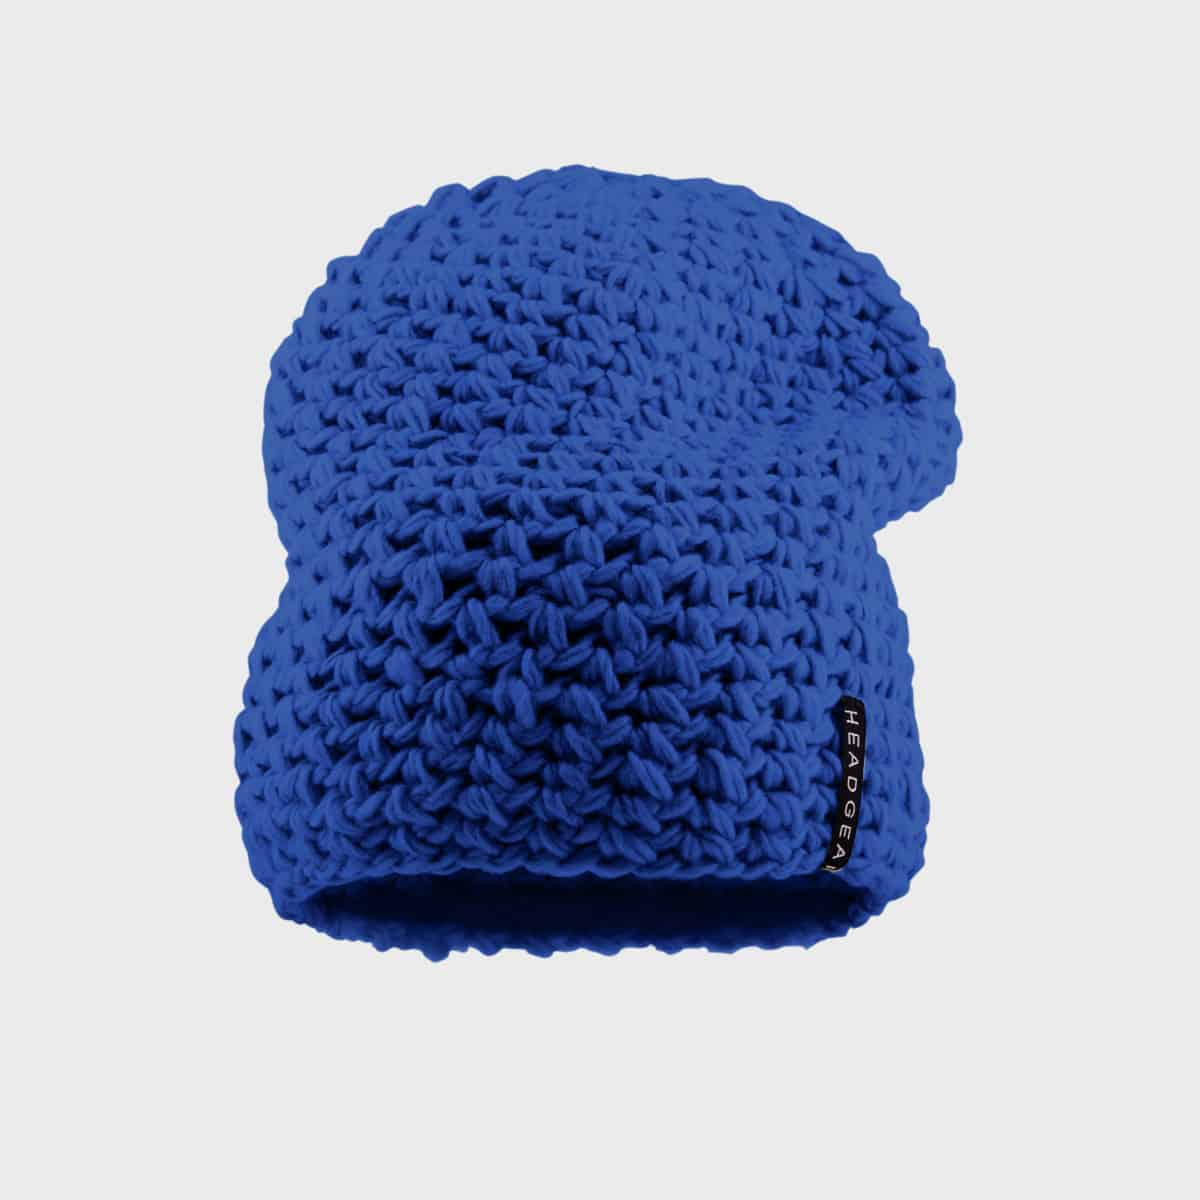 Häkelmütze-Casual-Outsized-Crocheted-Cap-kaufen-besticken_StickManufaktur